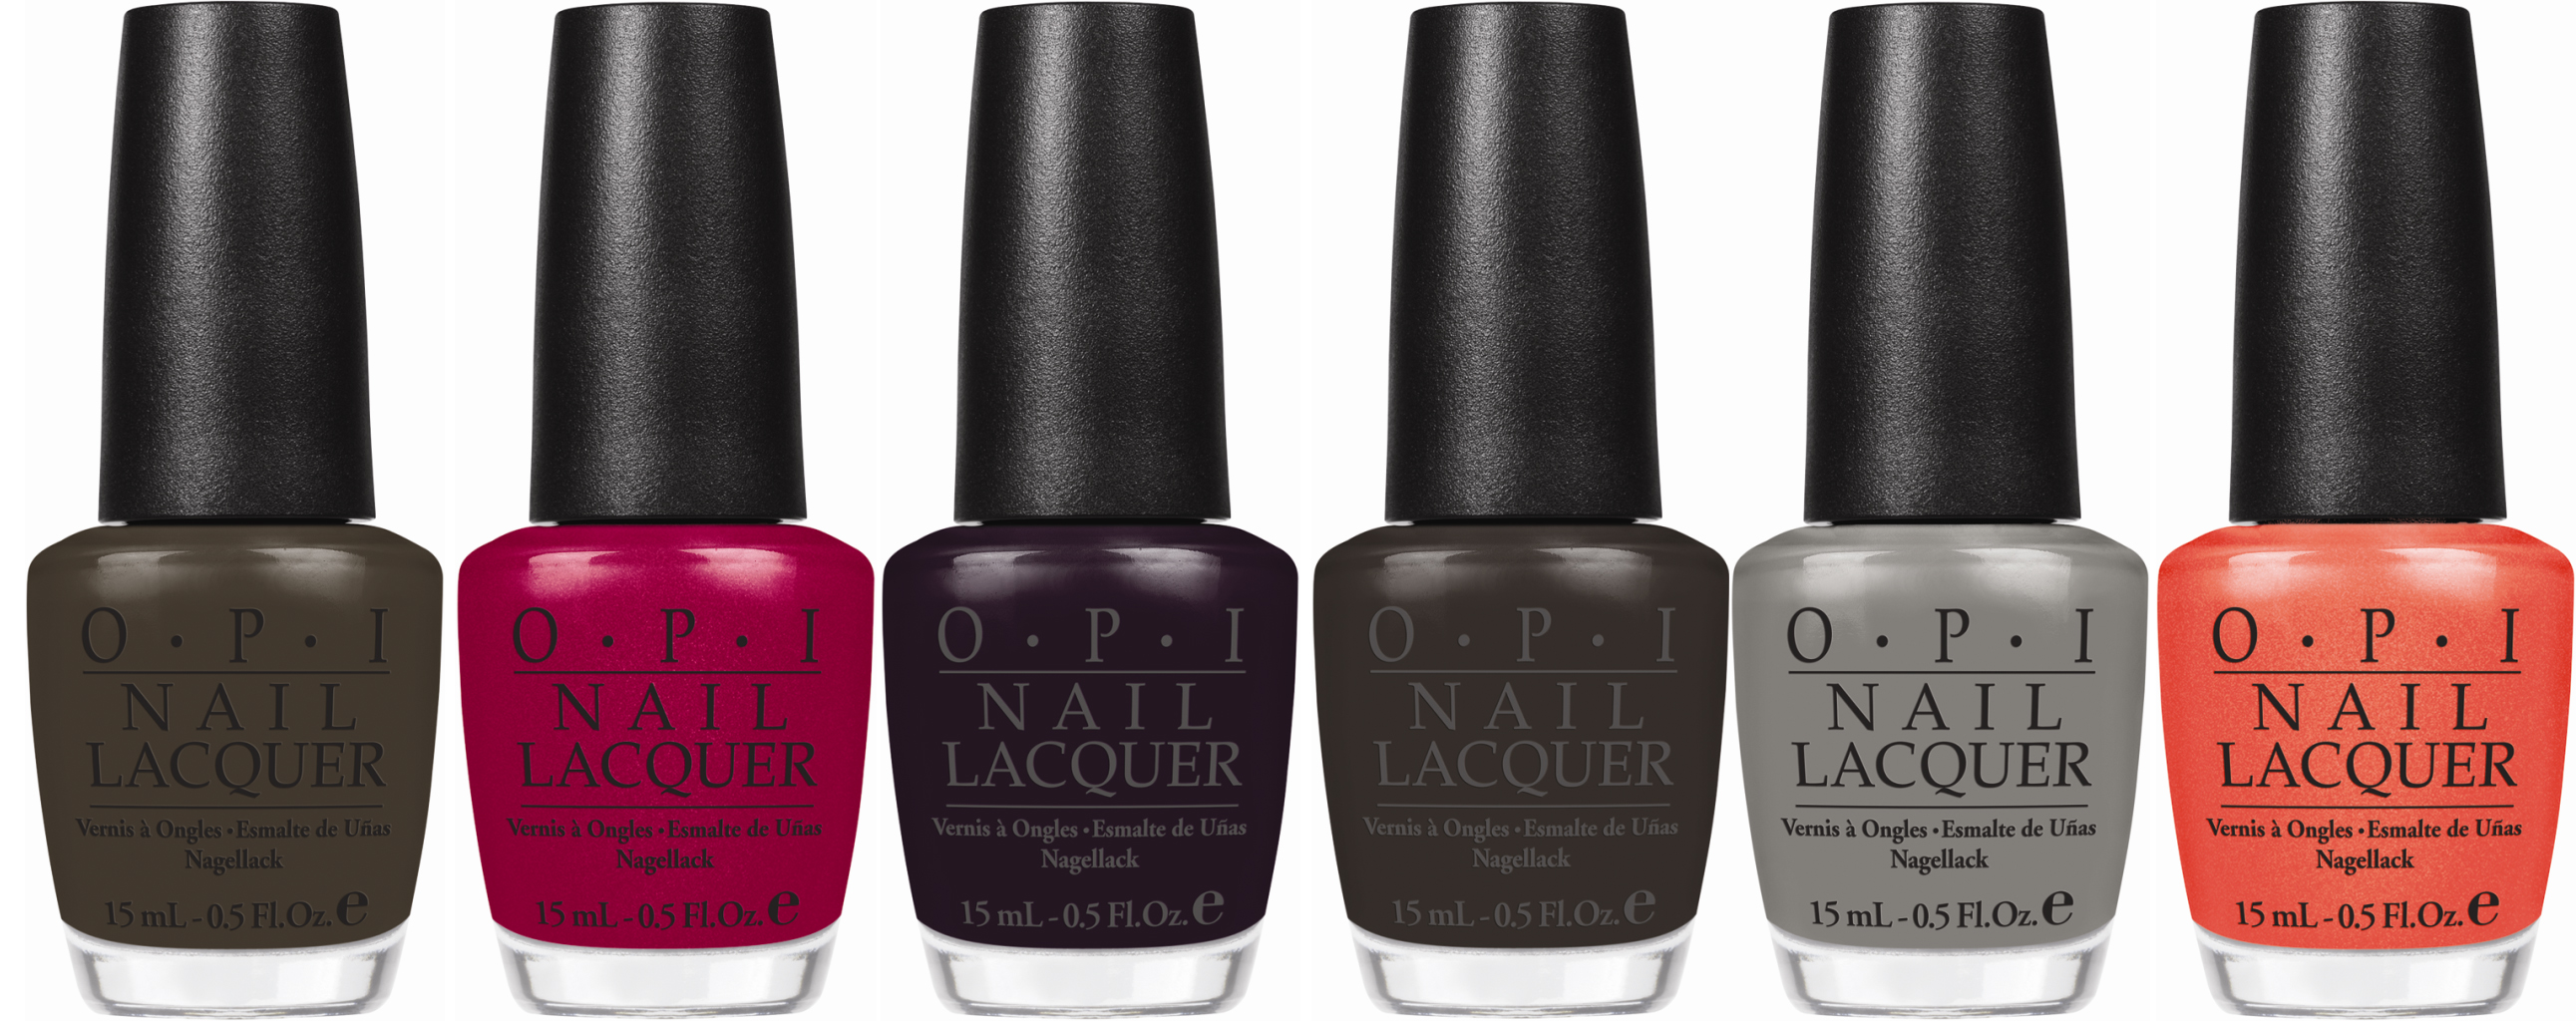 Fall Nail Polish Colors 2015 - Reasabaidhean